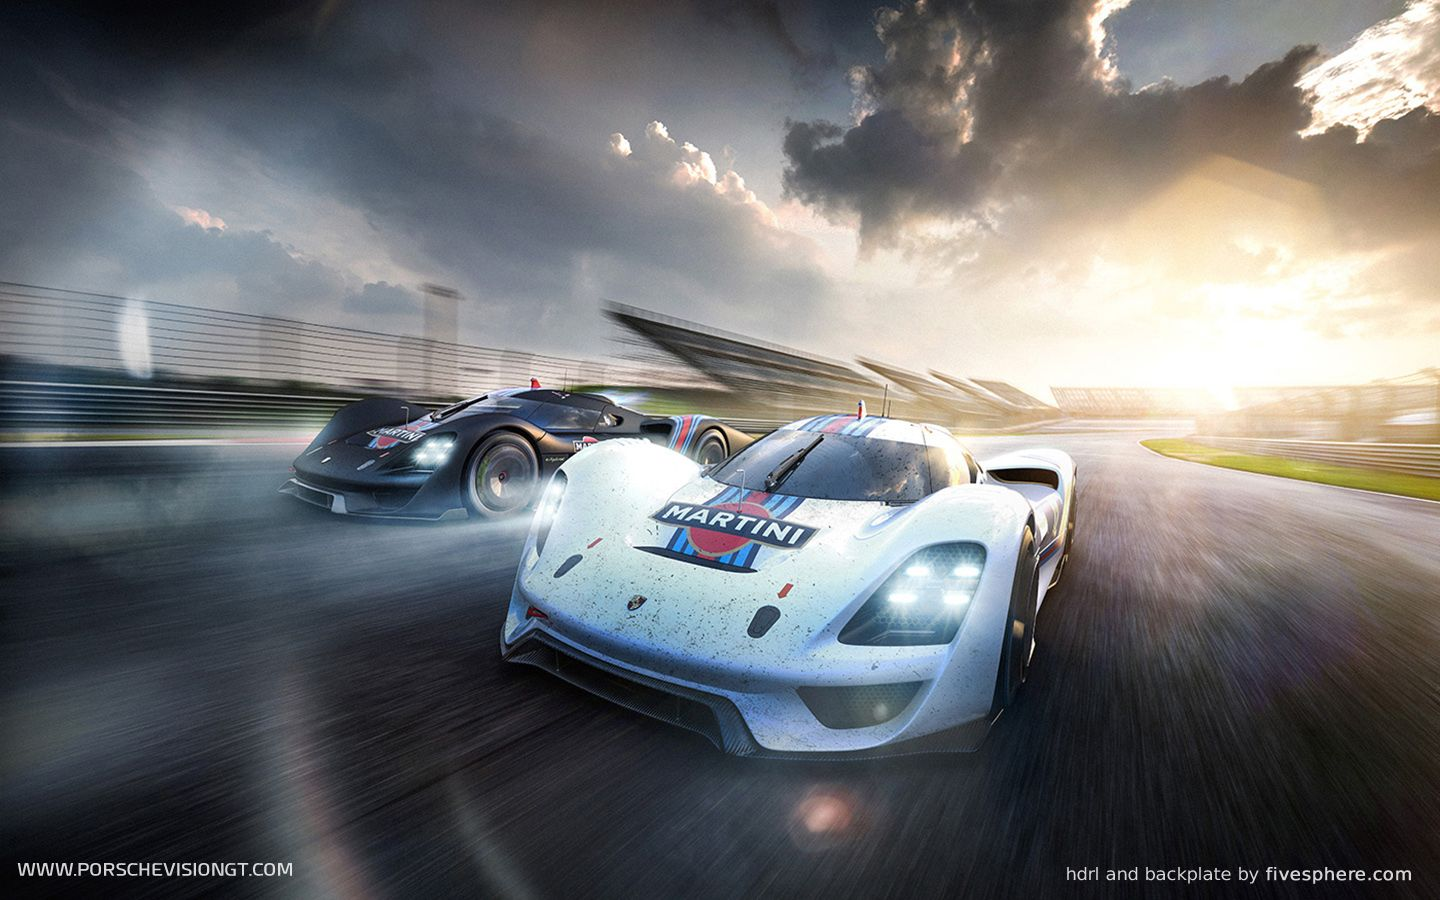 Alan Derosier - Transportation design: Porsche 908/04 Vision GT finally unveiled! www.porschevisiongt.com